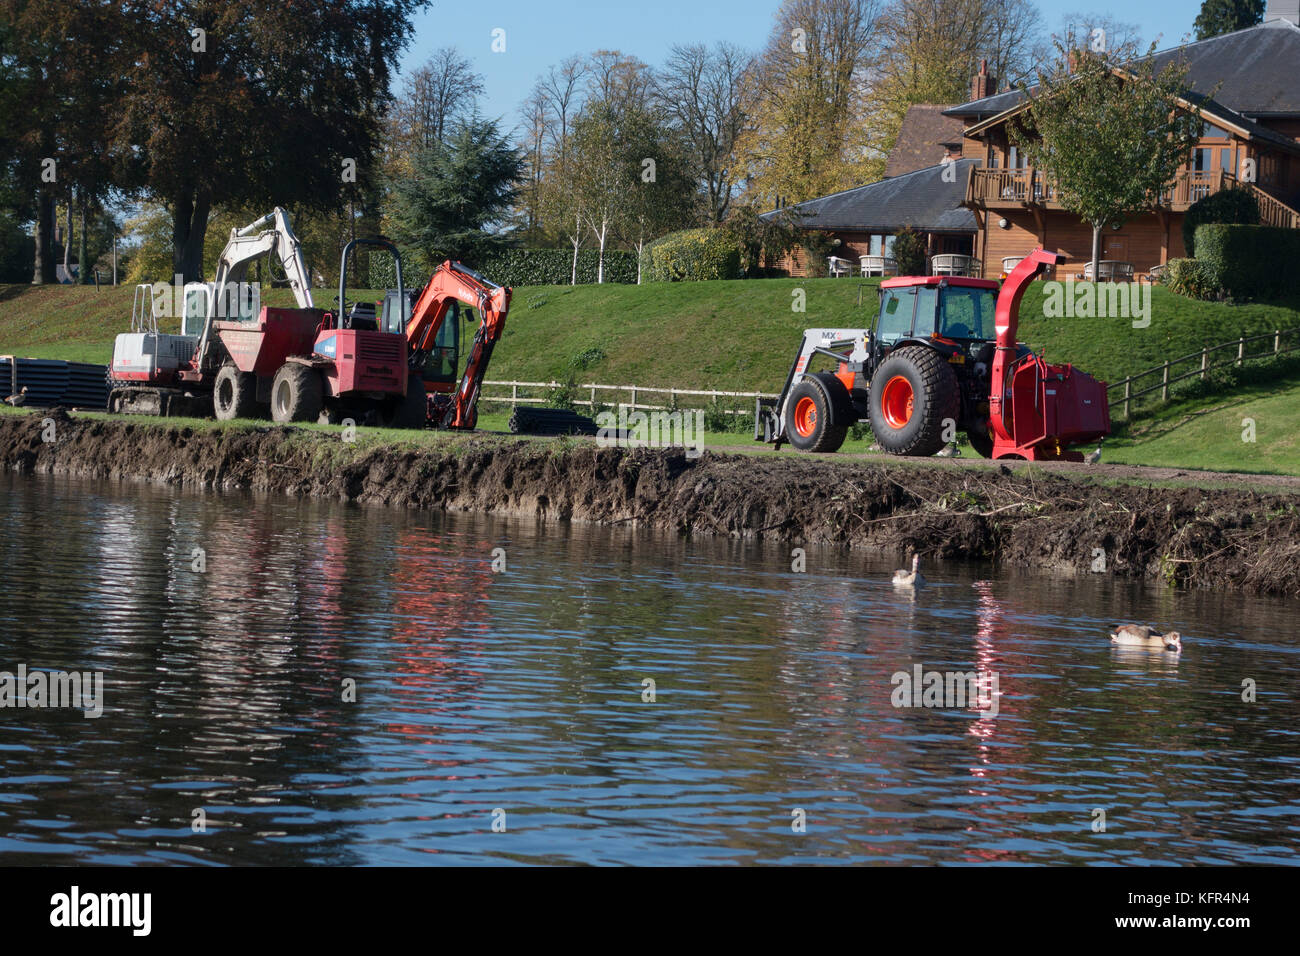 Building work on the Thames river bank, shoring up the bank at Moulsford, Oxfordshire UK - Stock Image